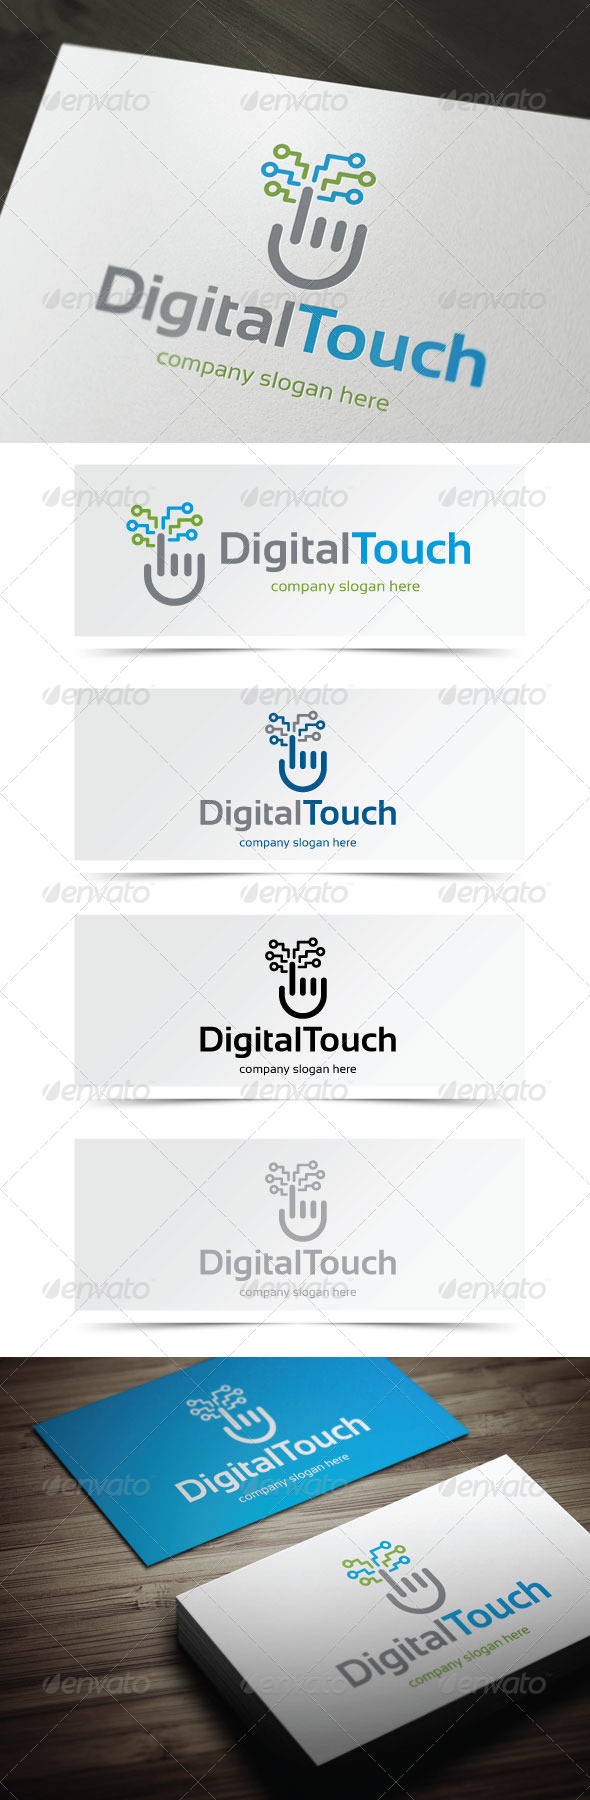 GraphicRiver Digital Touch 5355956